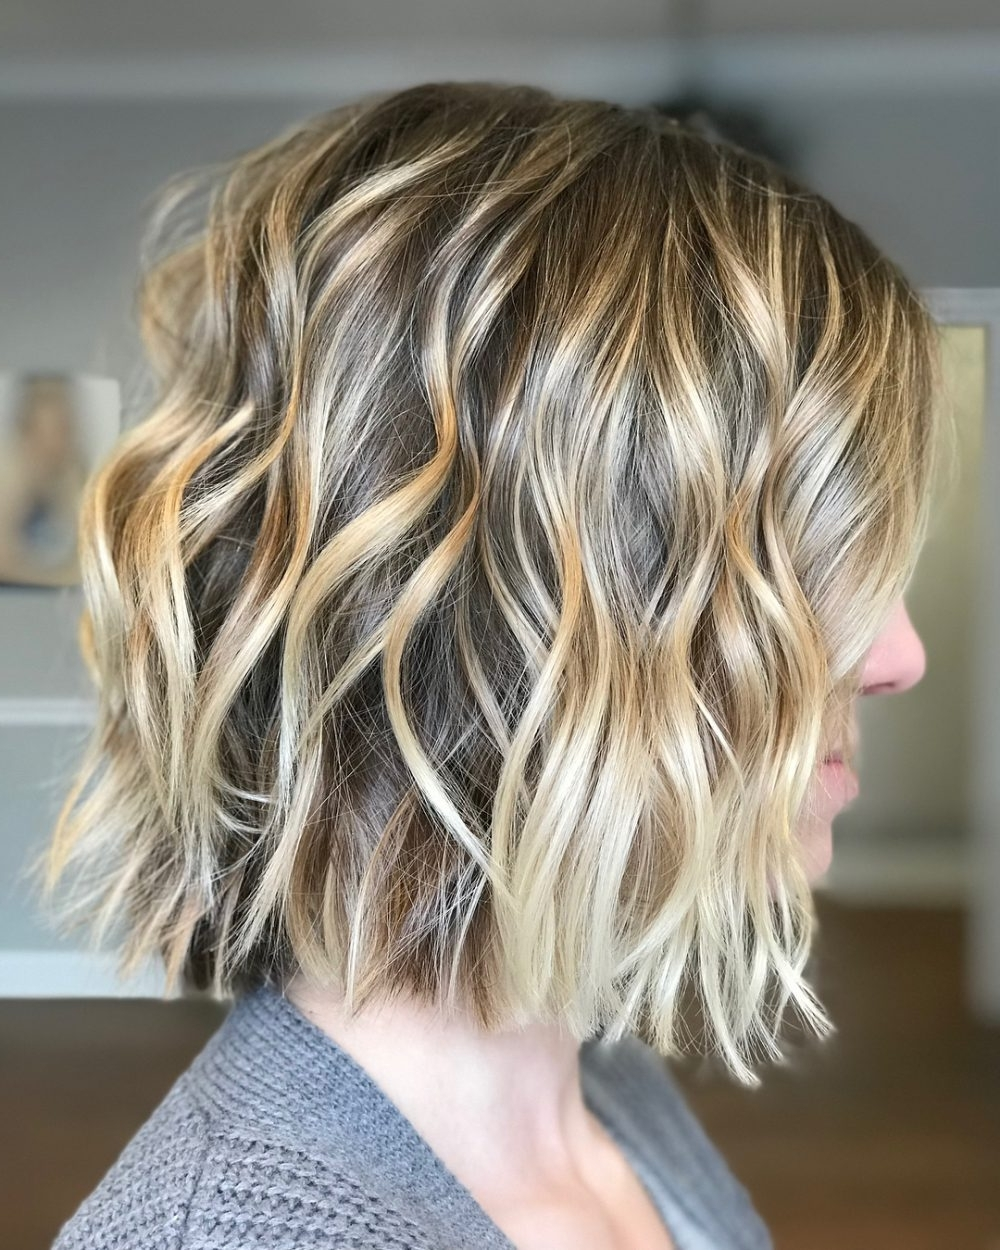 Top 20 Choppy Hairstyles You'Ll See In 2021 20+ Awesome Medium Choppy Hairstyles With Bangs